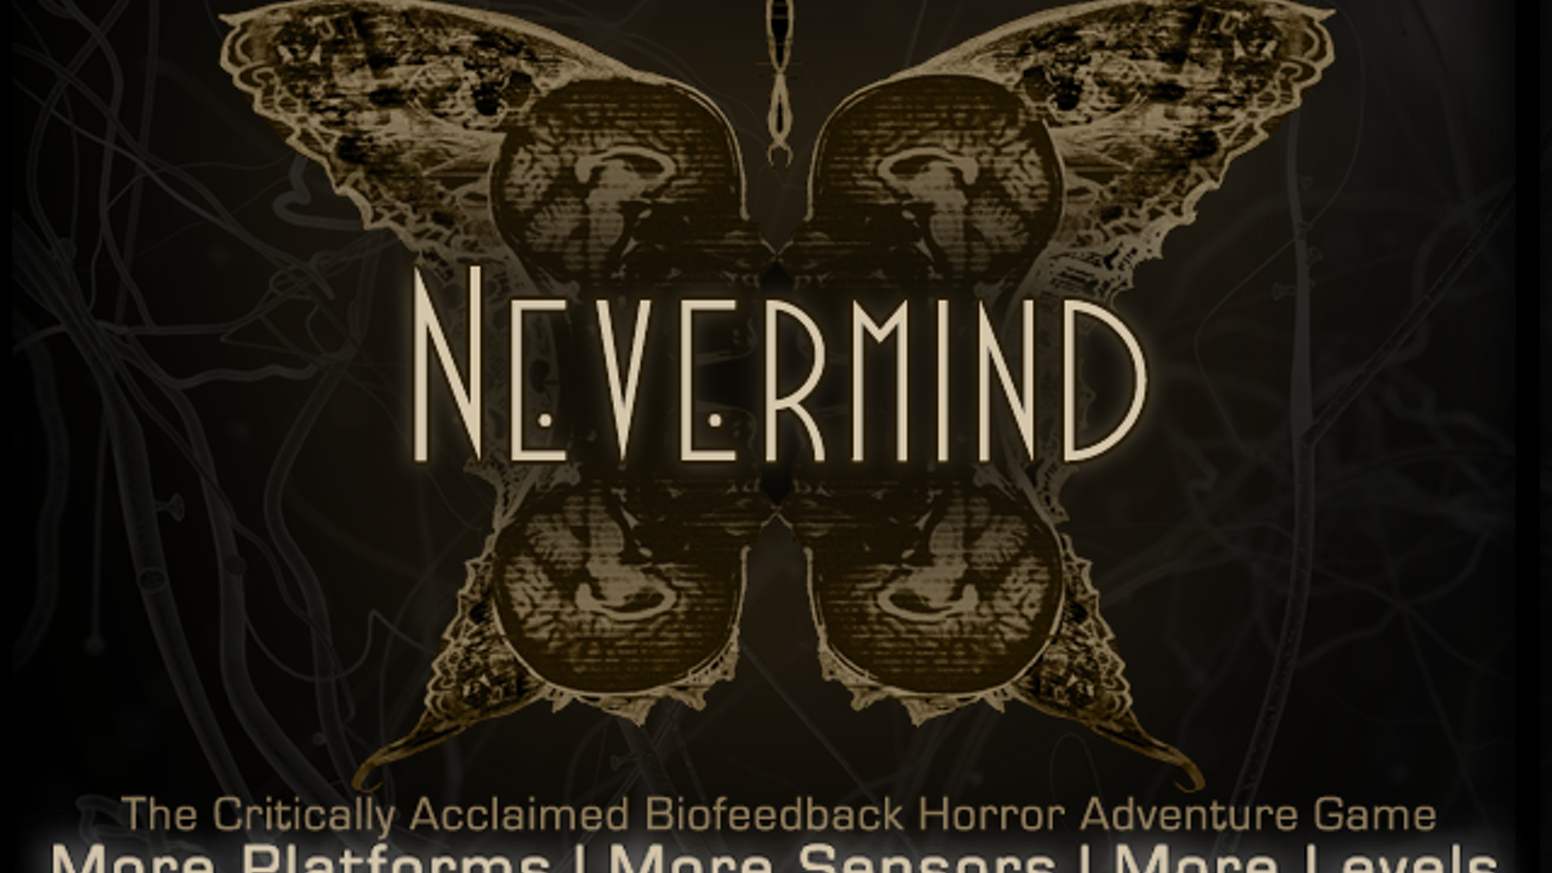 The award winning biofeedback horror adventure game is back! Thanks to your support, Nevermind will be coming to Windows, Mac, Xbox One, Oculus Rift (and maybe more) soon! http://store.steampowered.com/app/342260